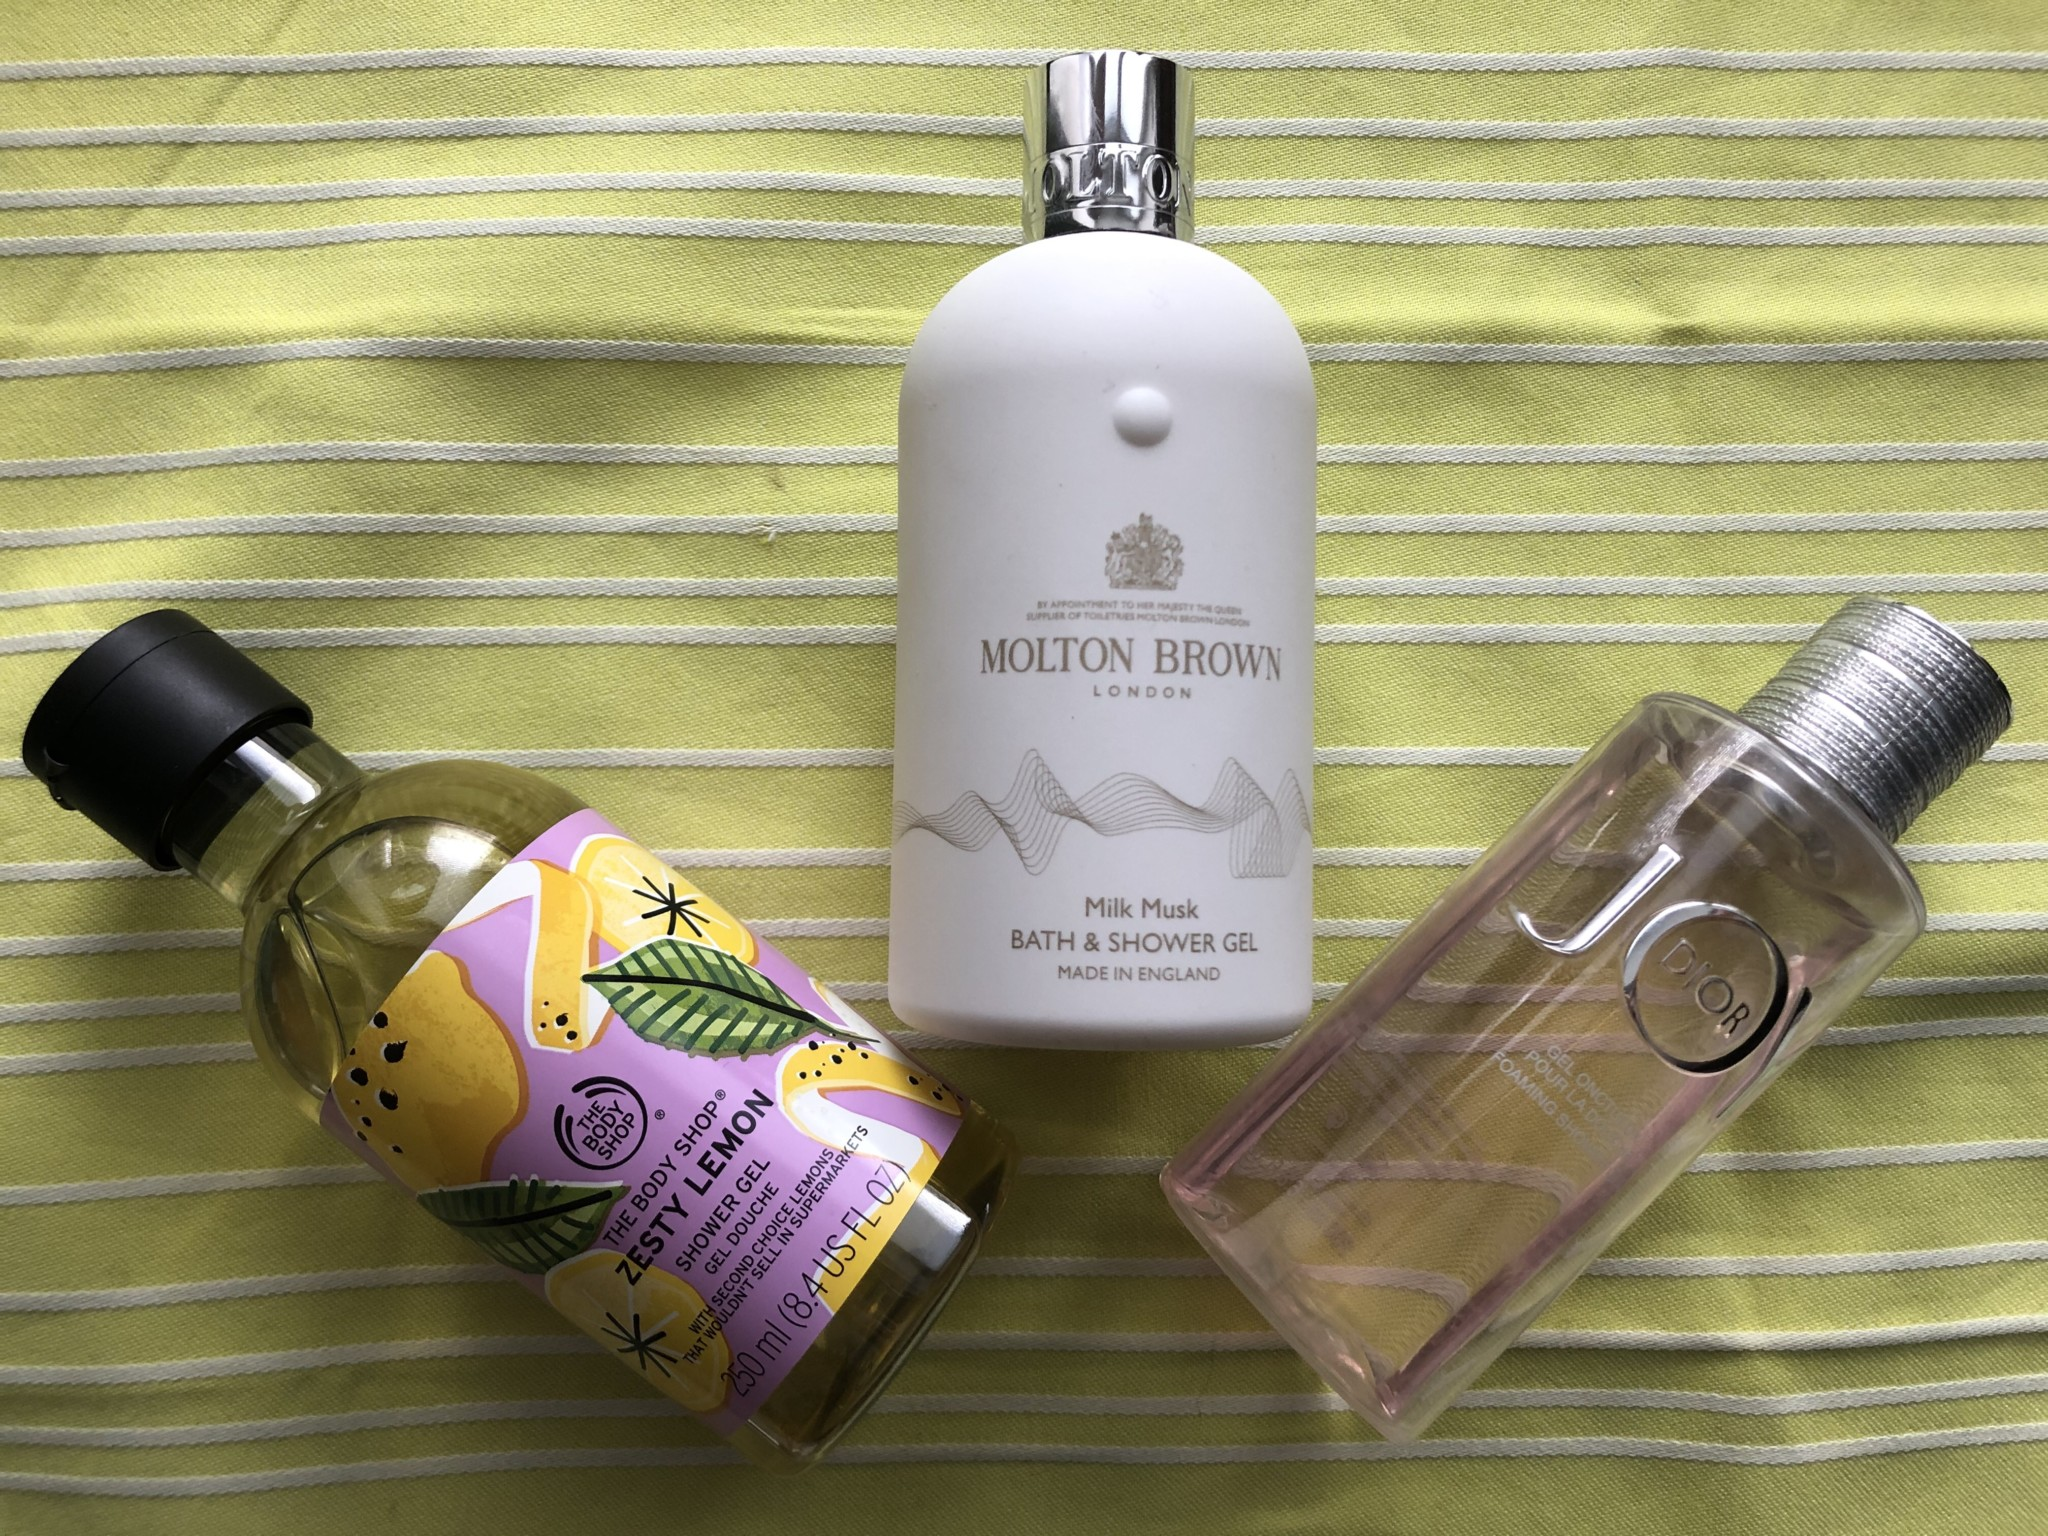 The Body Shop Zesty Lemon Shower Gel, Molton Brown Milk Musk Bath Shower Gel, Dior JOY Foaming Shower Gel.